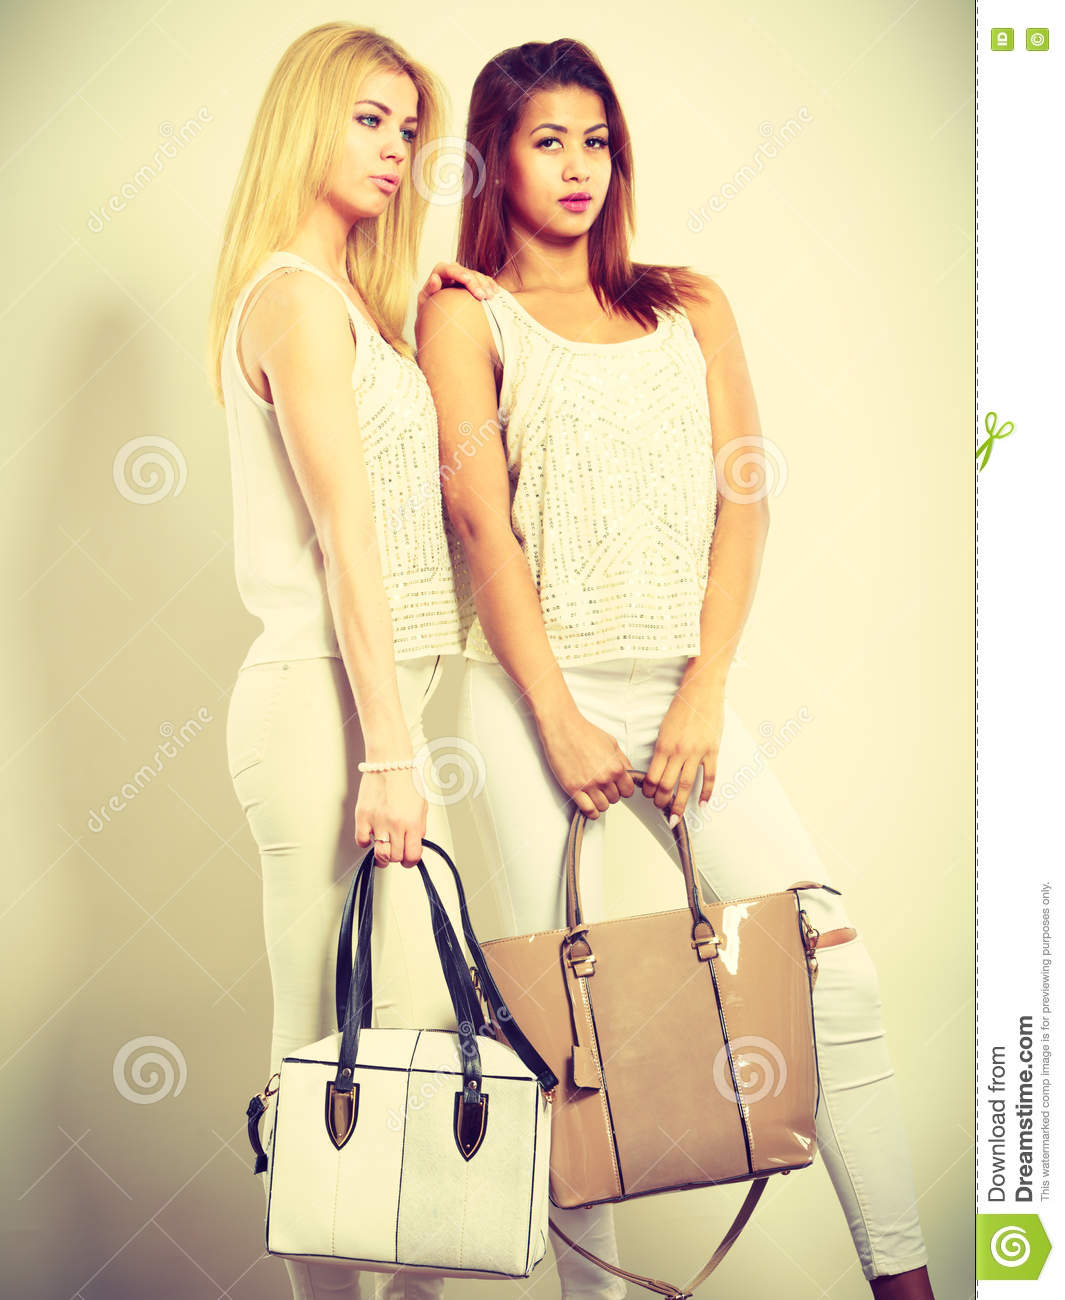 Young Models With Handbags. Stock Photo